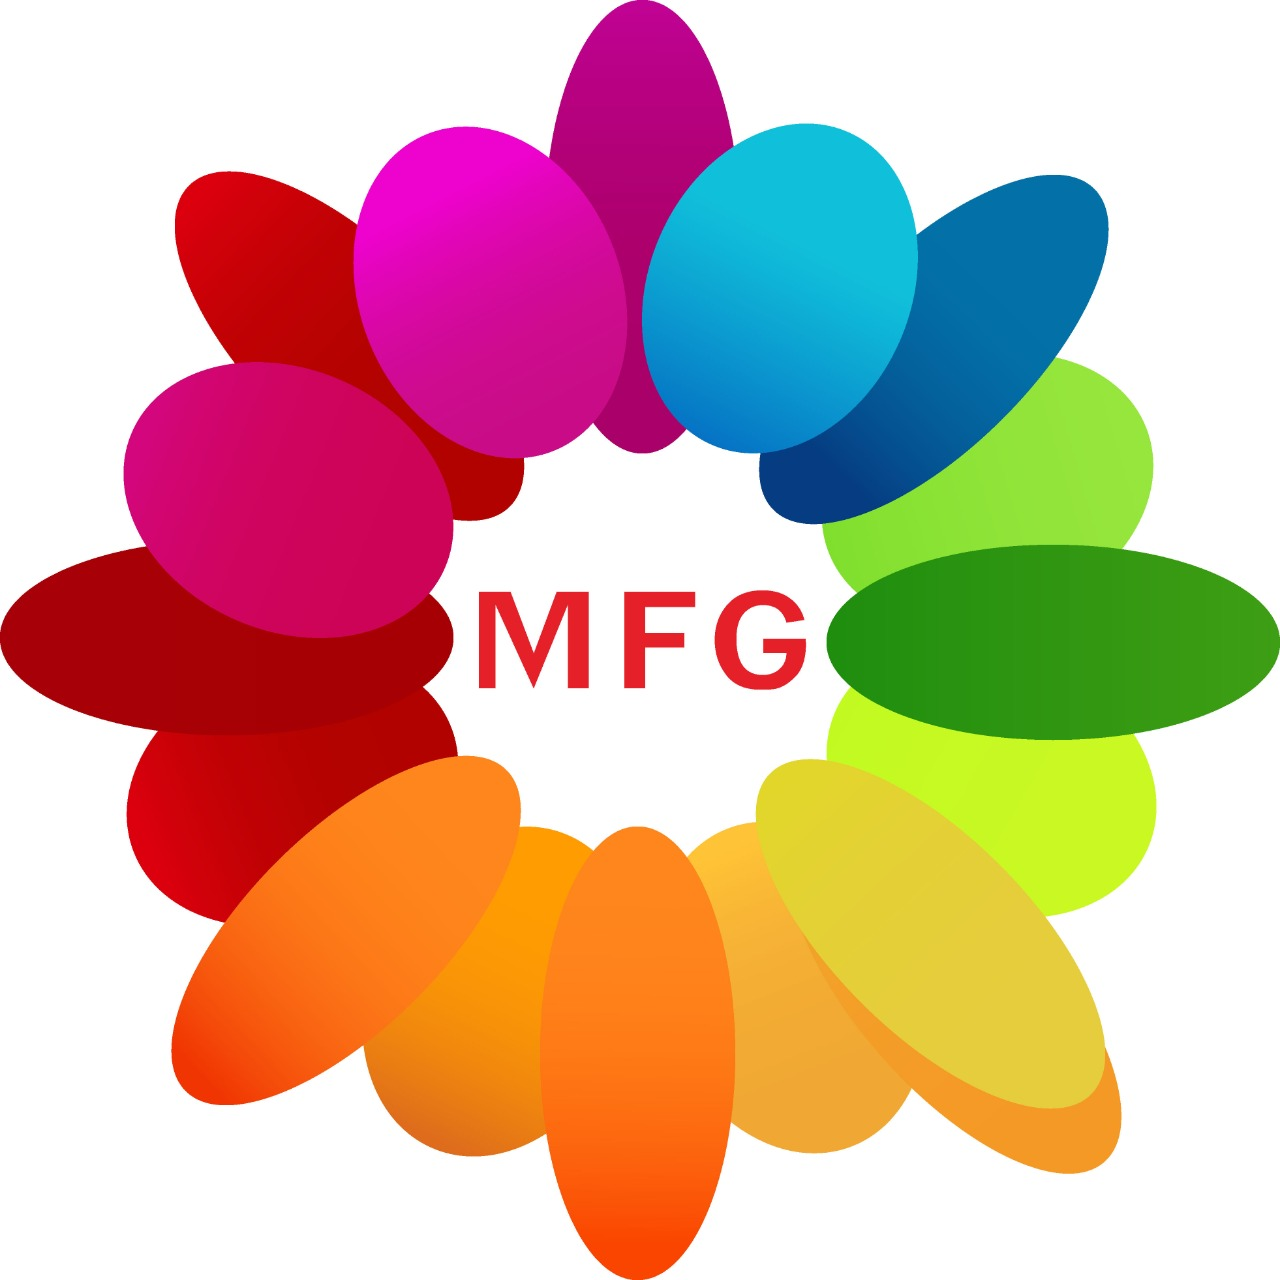 Good Combination of 1 kg black forest cake(Eggless) with 8 inches teddy bear with 6 pcs of assorted cadburies with single red rose